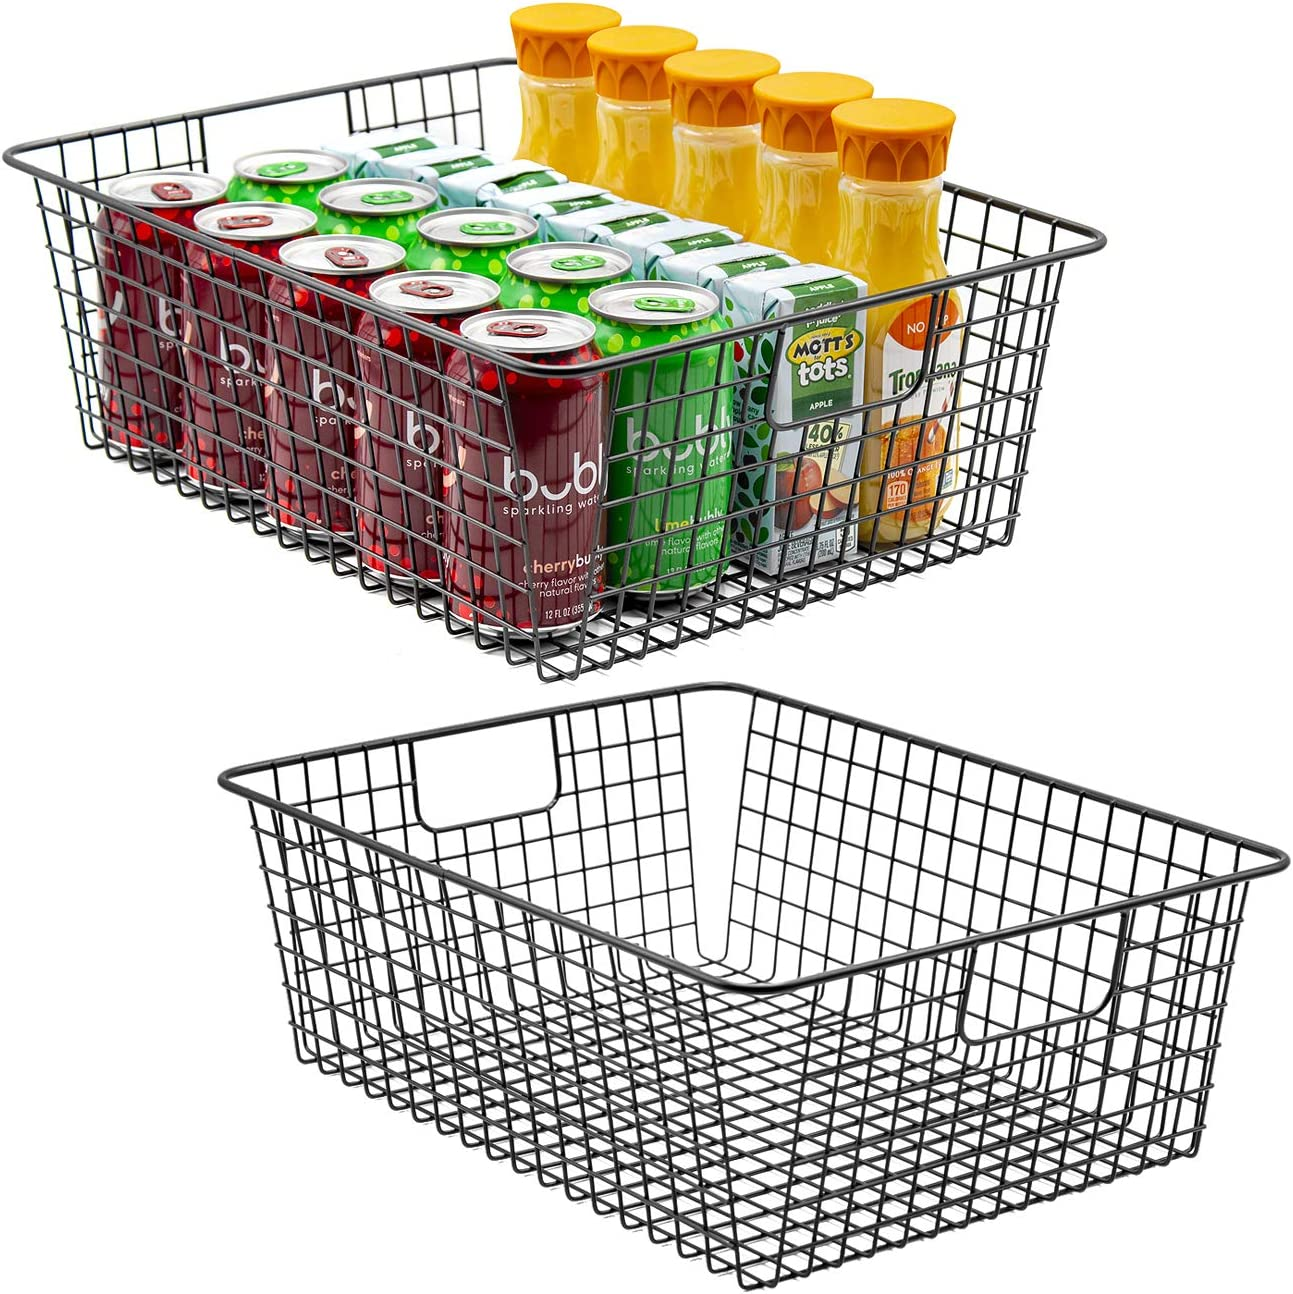 Sorbus Metal Wire Baskets Storage Bin Organizer for Food Pantry, Freezer, Kitchen, Laundry Room, Basket Organizers for Home, Bathroom, Closet Organization, Iron Metal